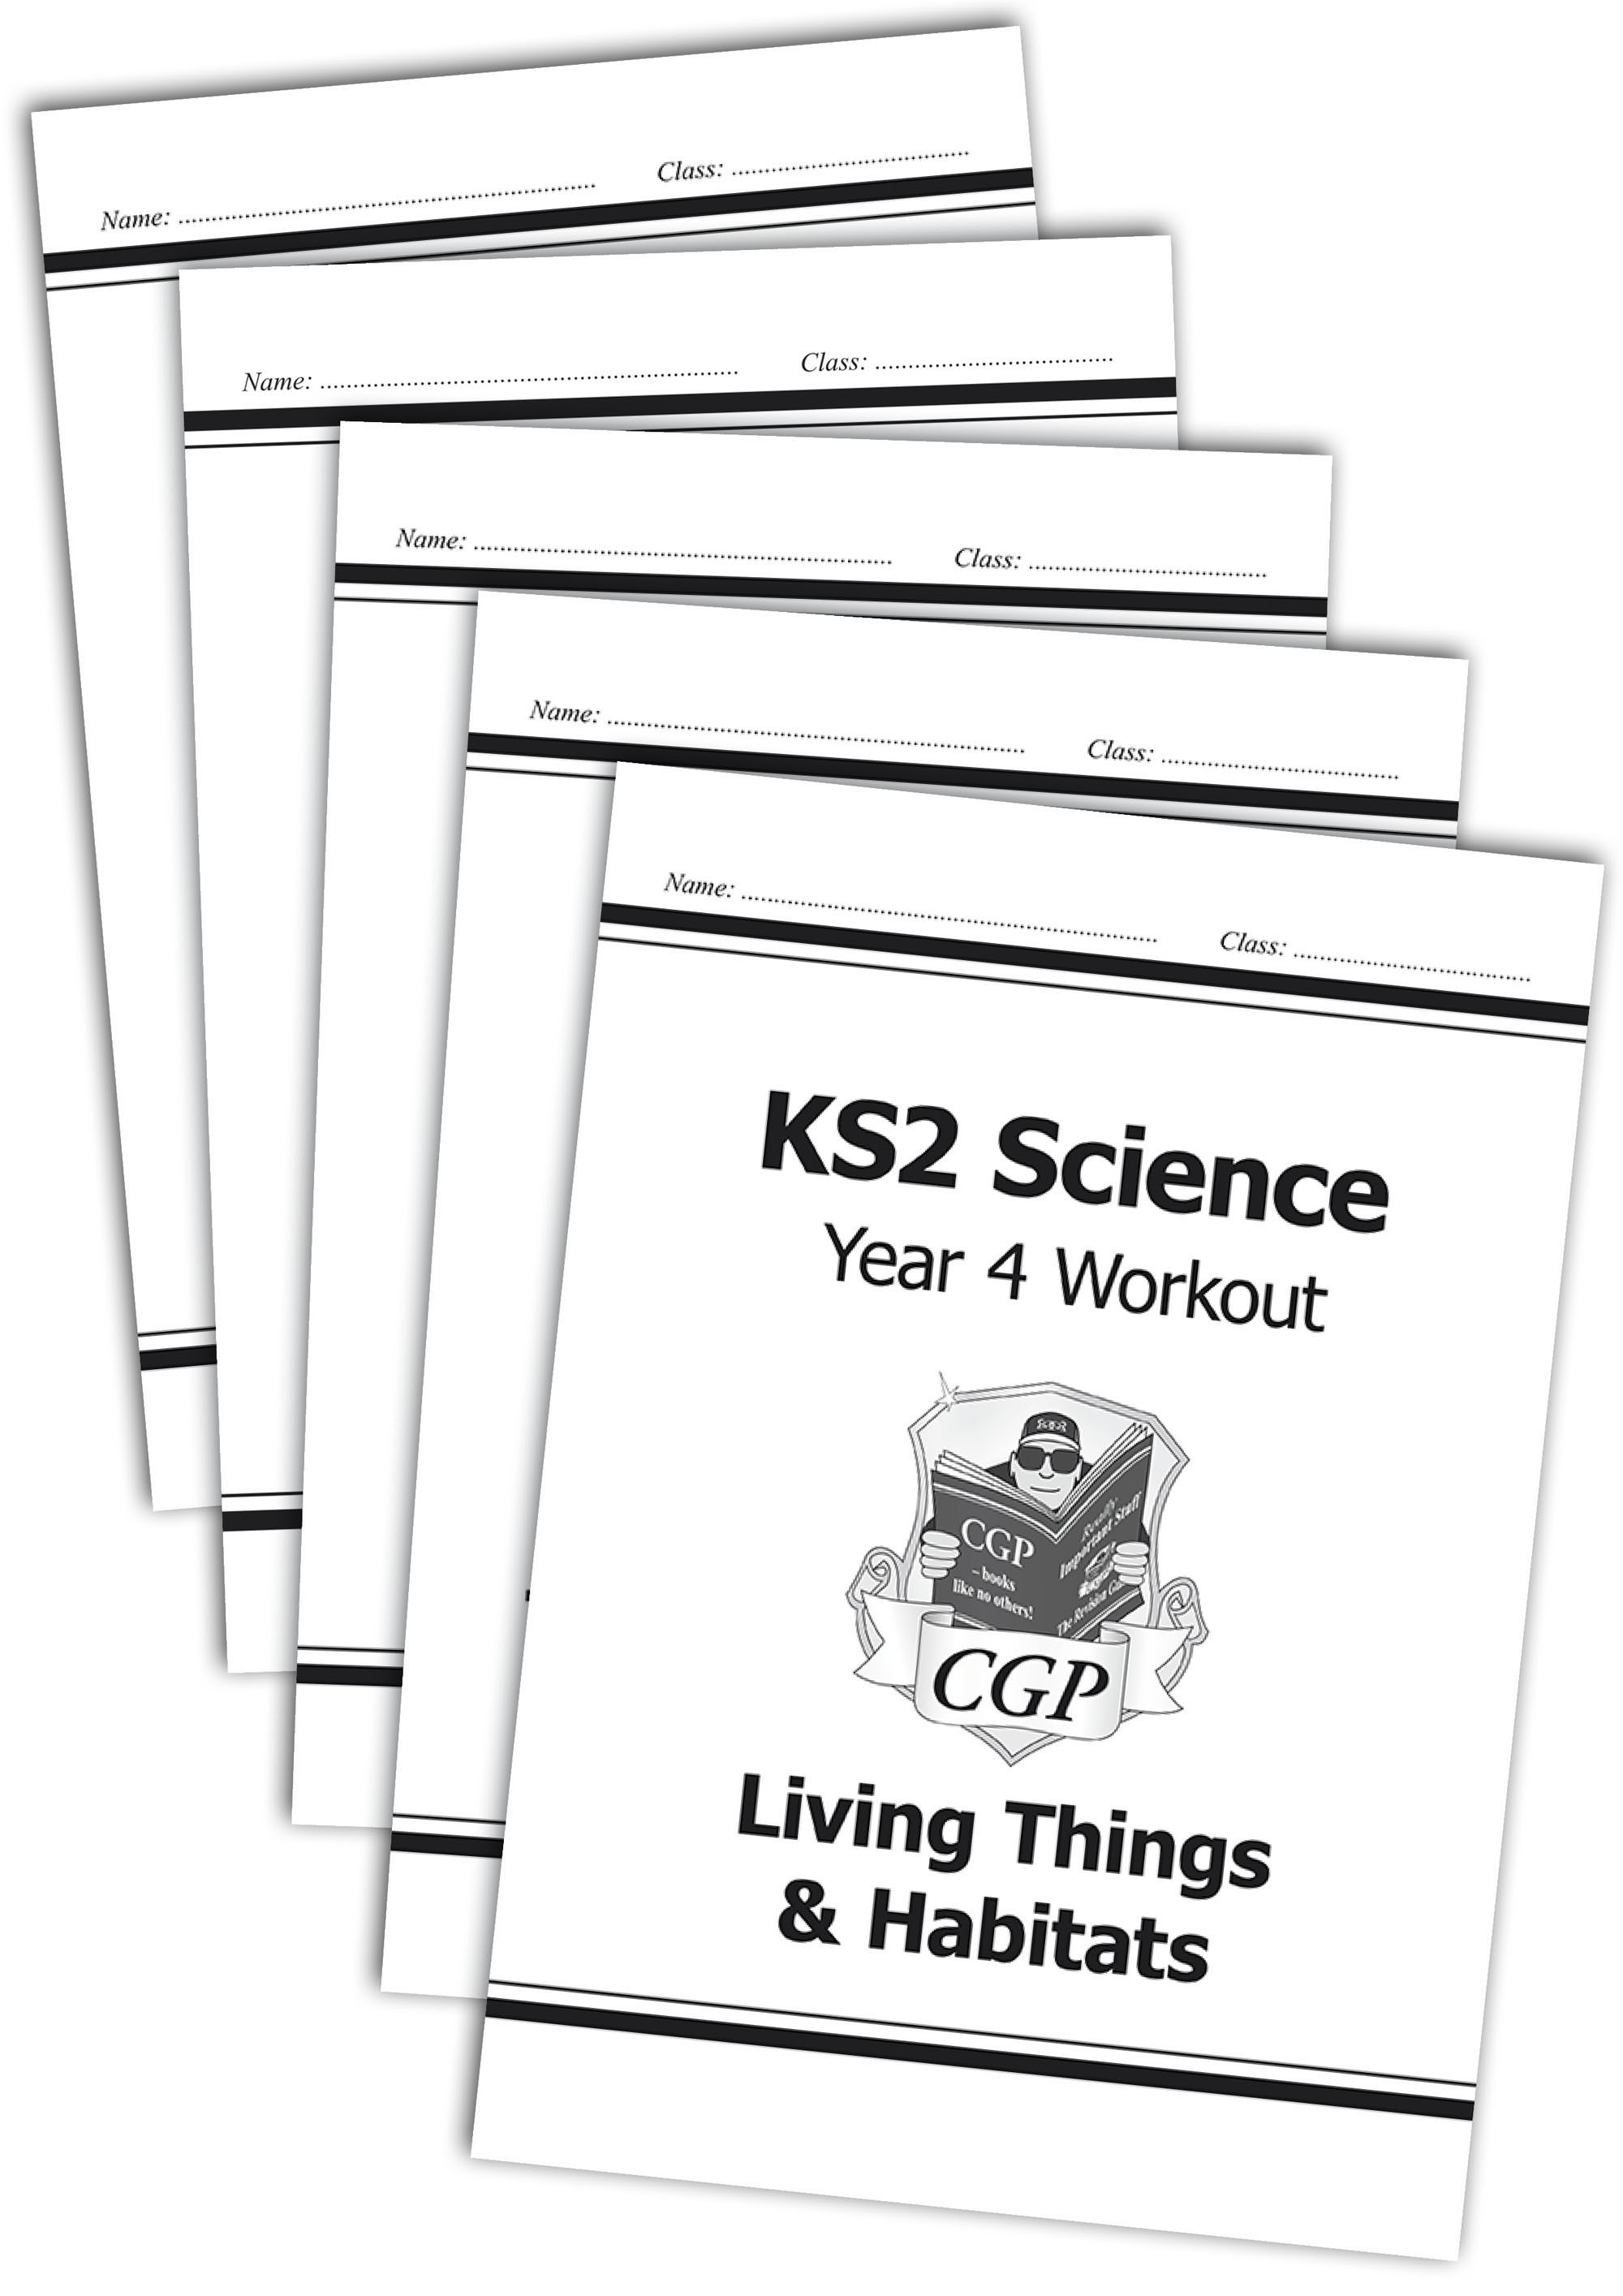 SWB422 - KS2 Science Year 4 Workout Bundle